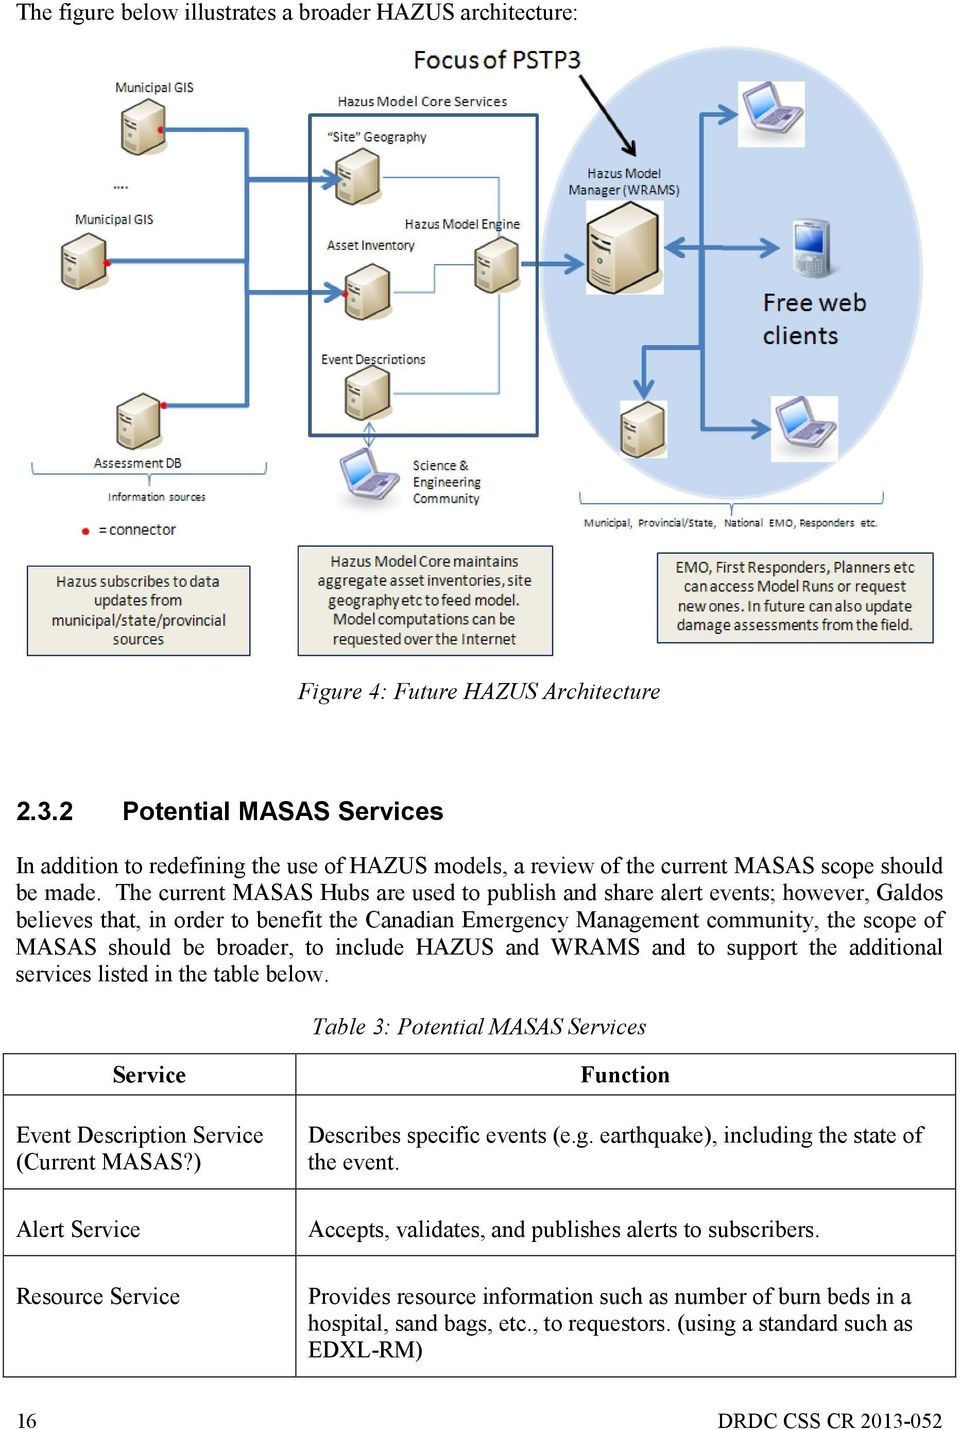 The current MASAS Hubs are used to publish and share alert events; however, Galdos believes that, in order to benefit the Canadian Emergency Management community, the scope of MASAS should be